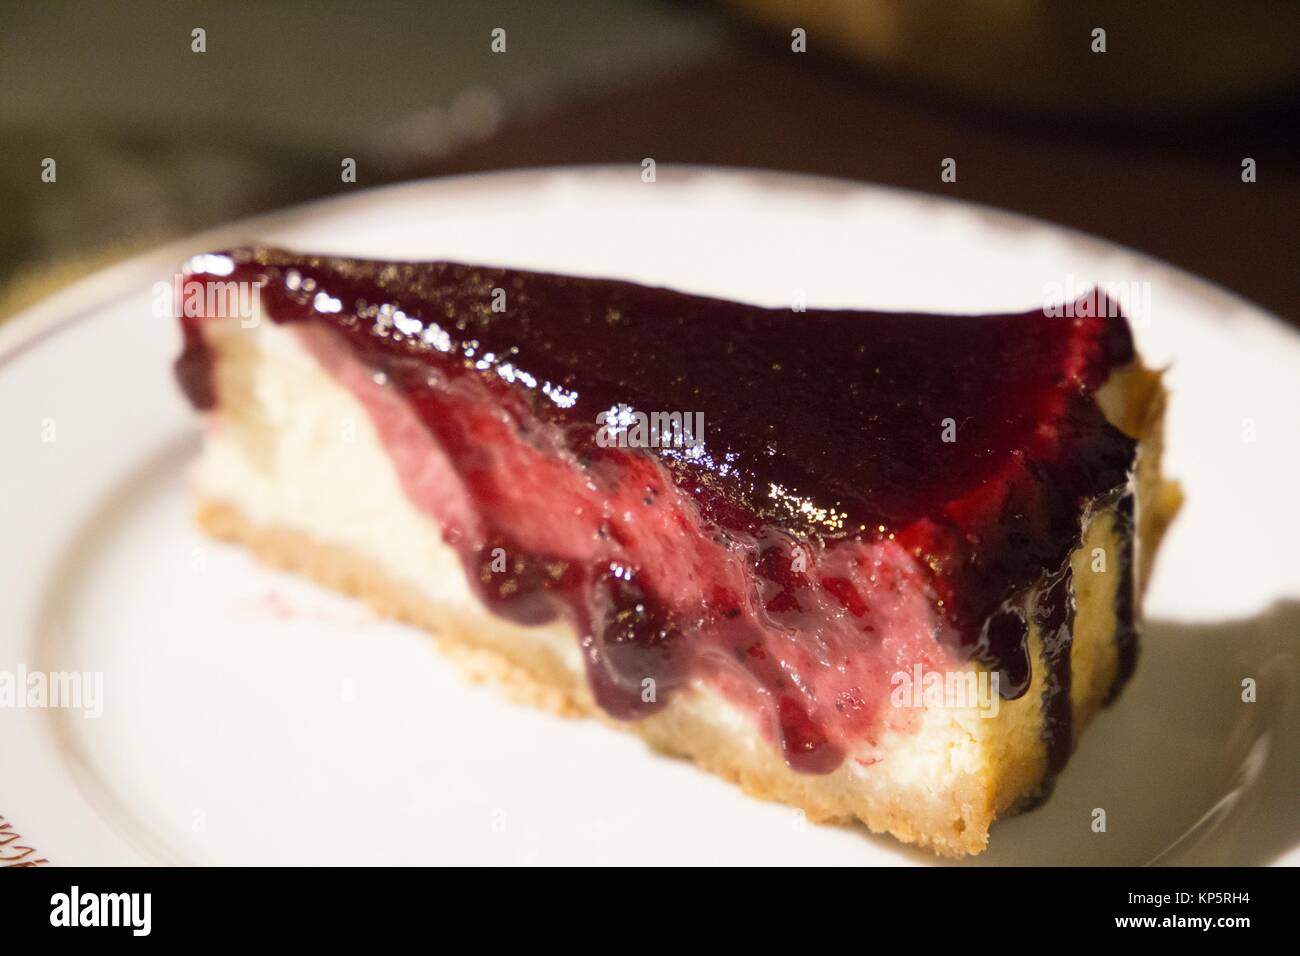 Piece of cheesecake topped with cherry compote - Stock Image